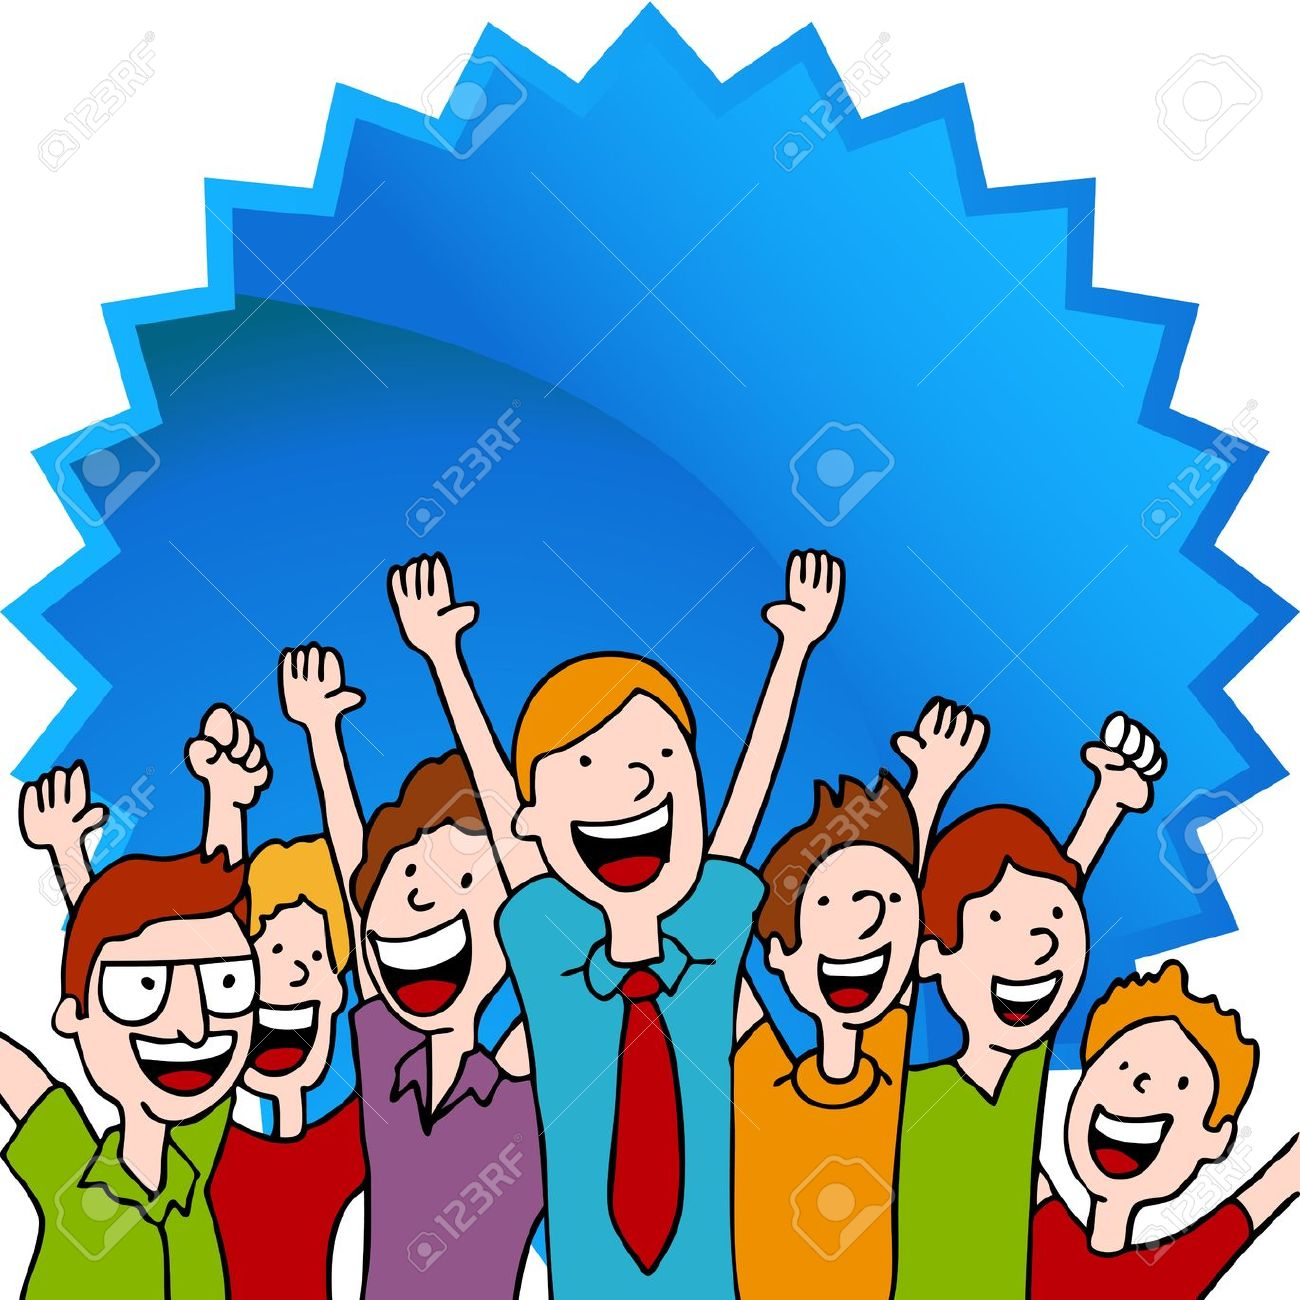 Pictures of kids working. Celebration clipart group